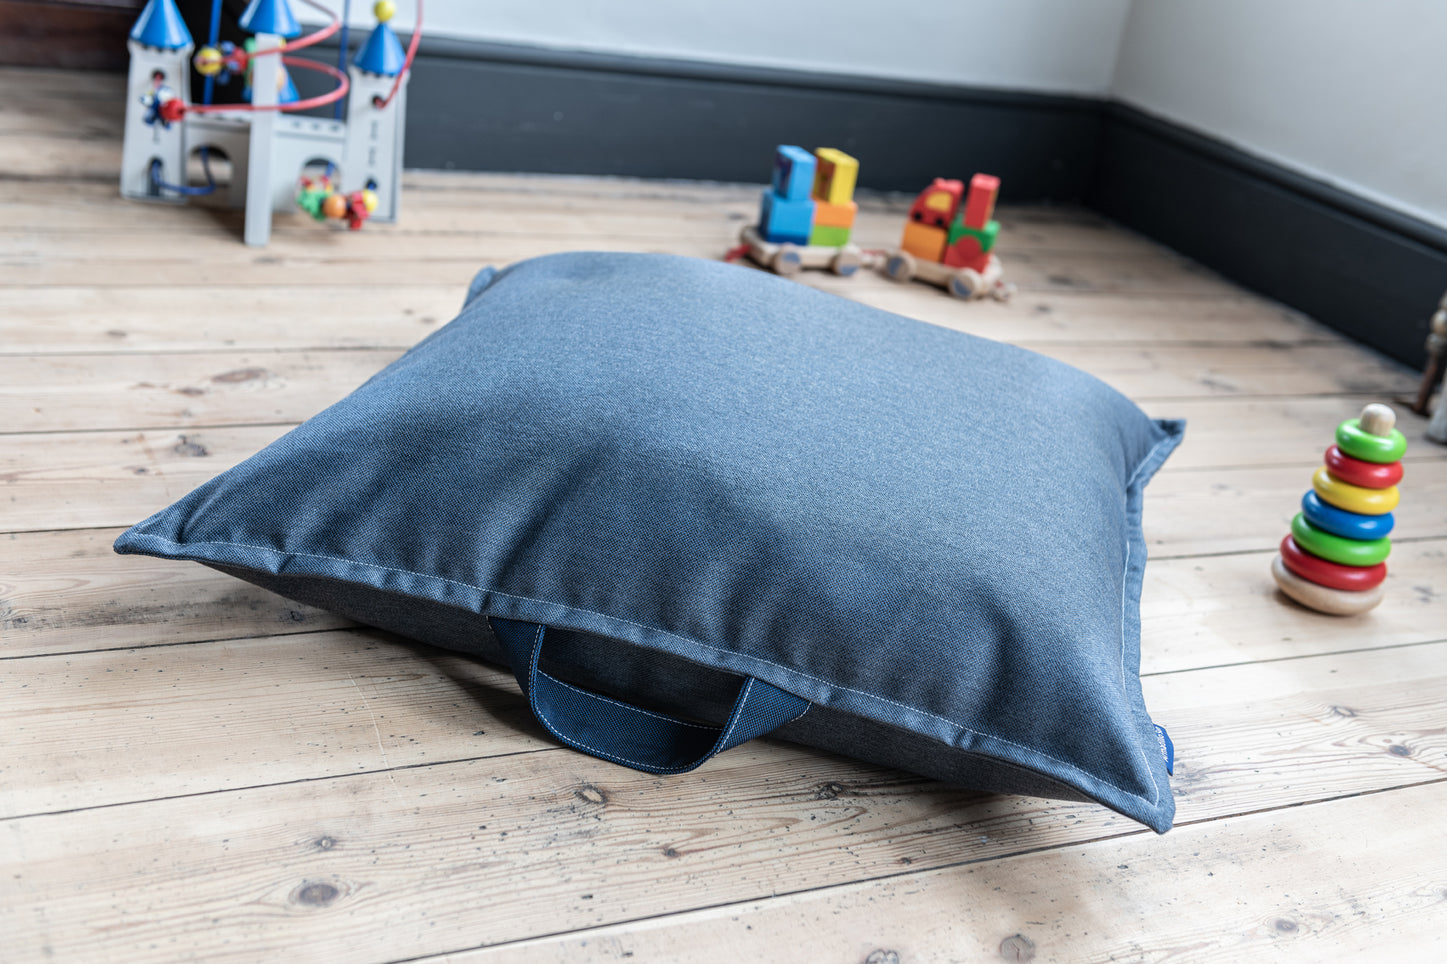 Children's Floor cushion in Indigo Blue